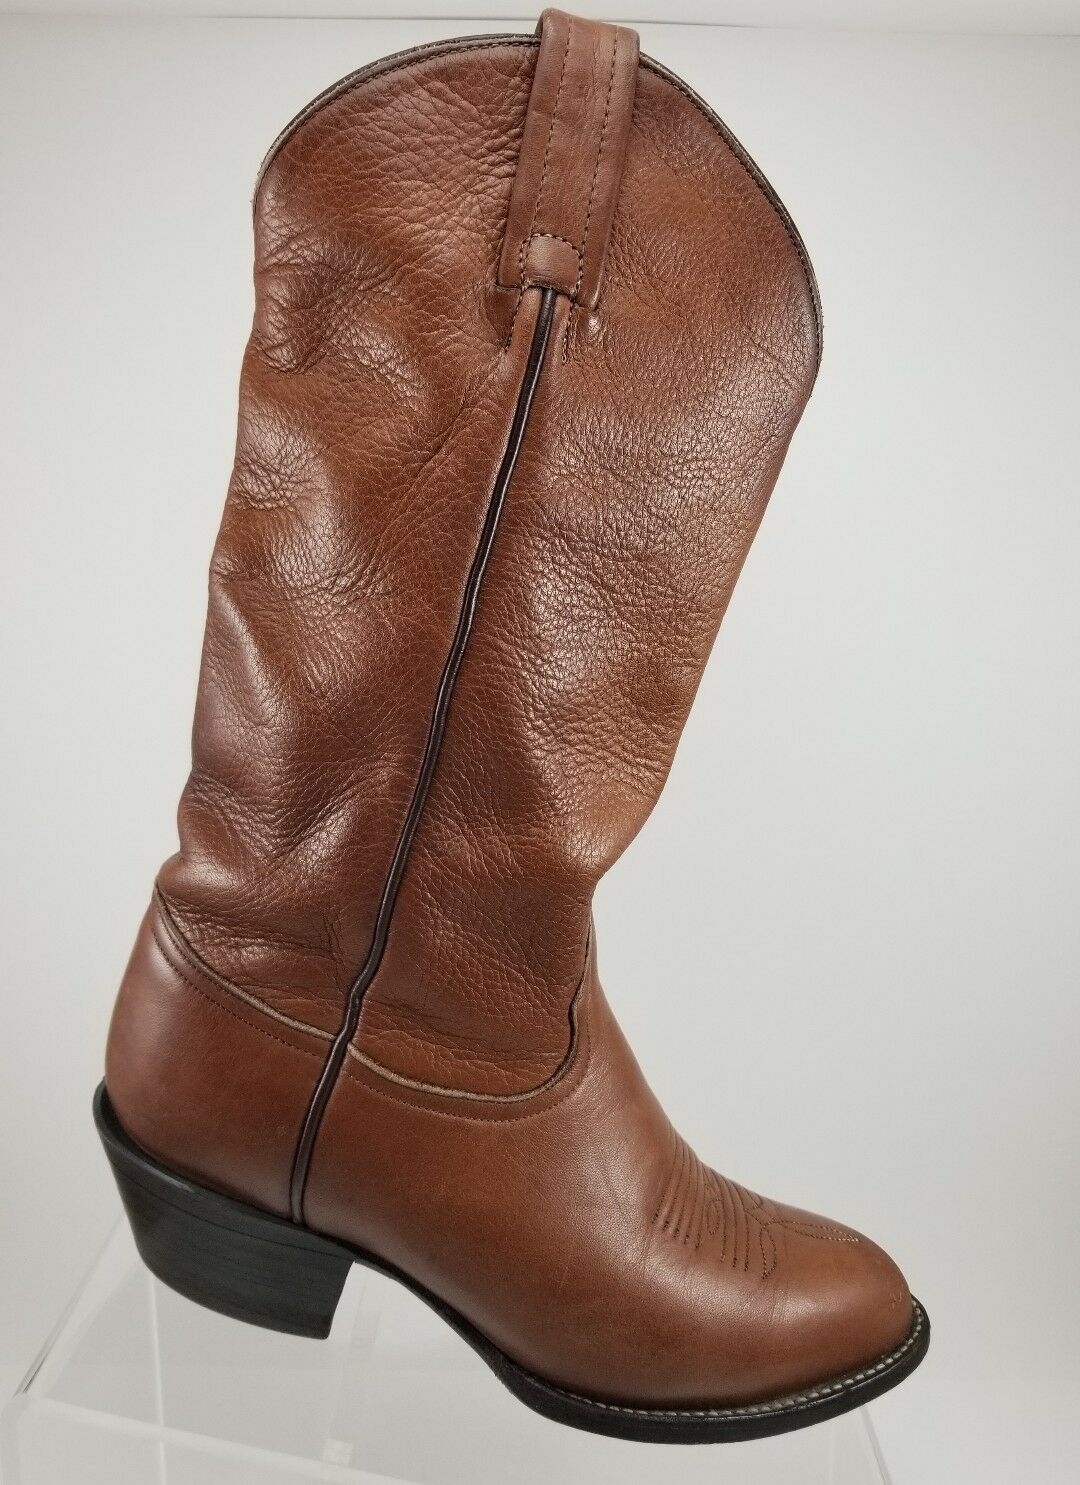 Tony Lama Brown Pebbled Leather Mid-Calf Western Boots Womens 5.5M 1013